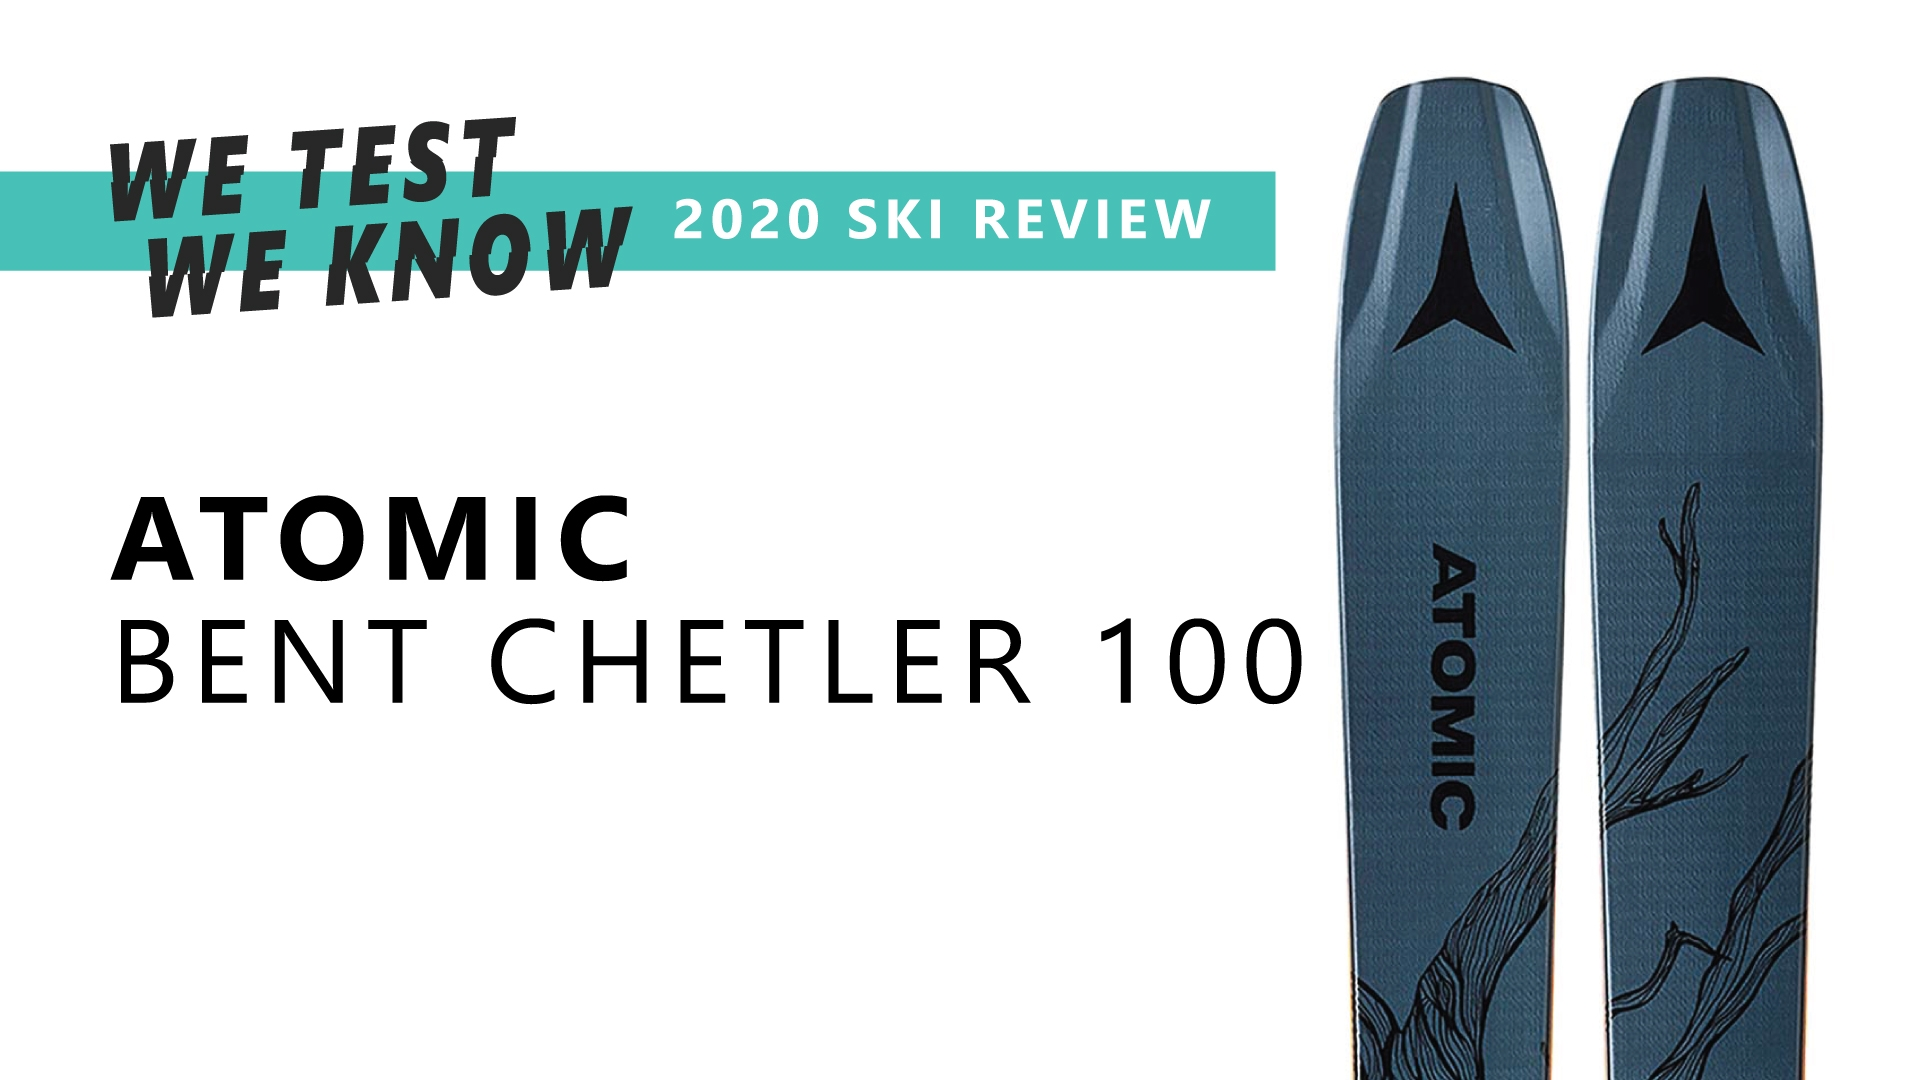 Atomic Bent Chetler 100 - 2020 Ski Review